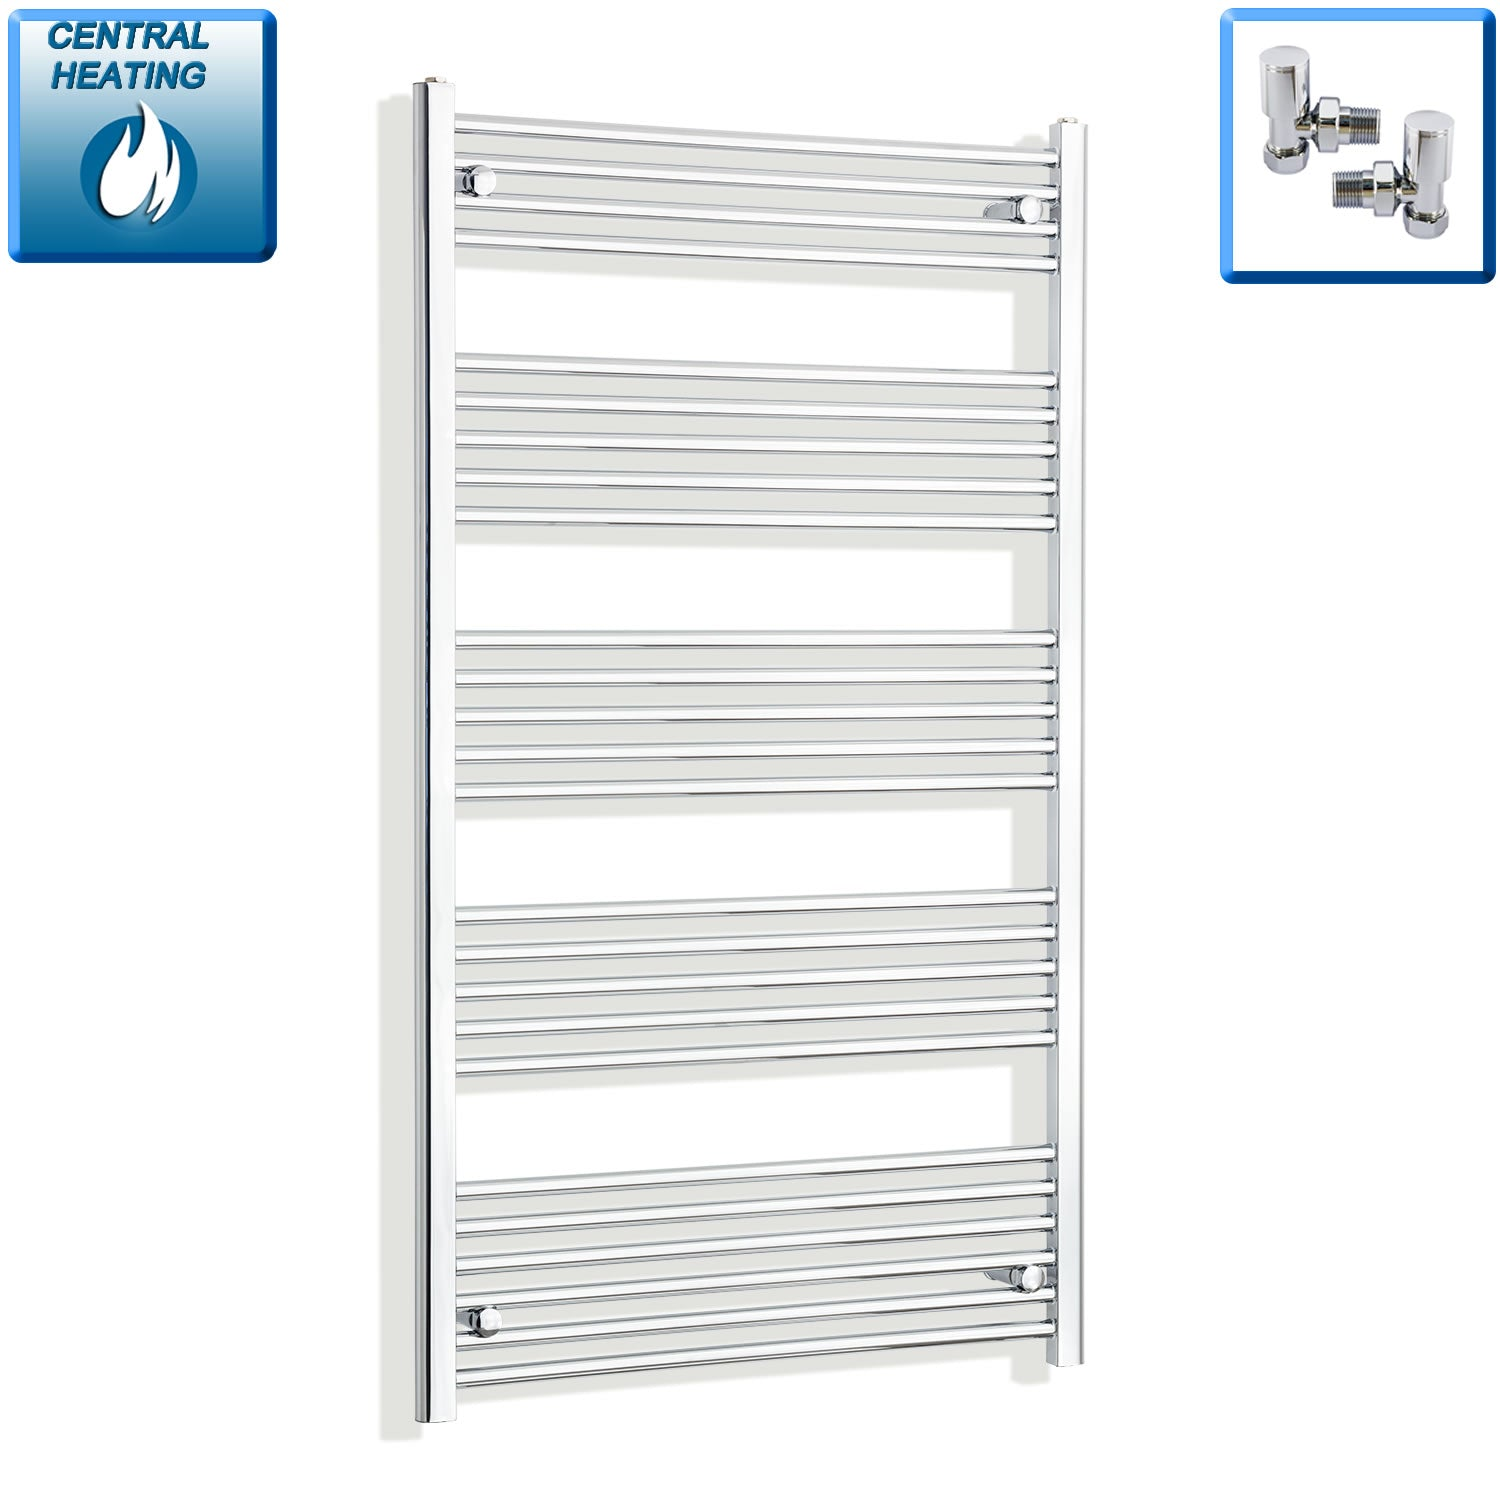 750mm Wide 1400mm High Flat Chrome Heated Towel Rail Radiator HTR,With Angled Valve